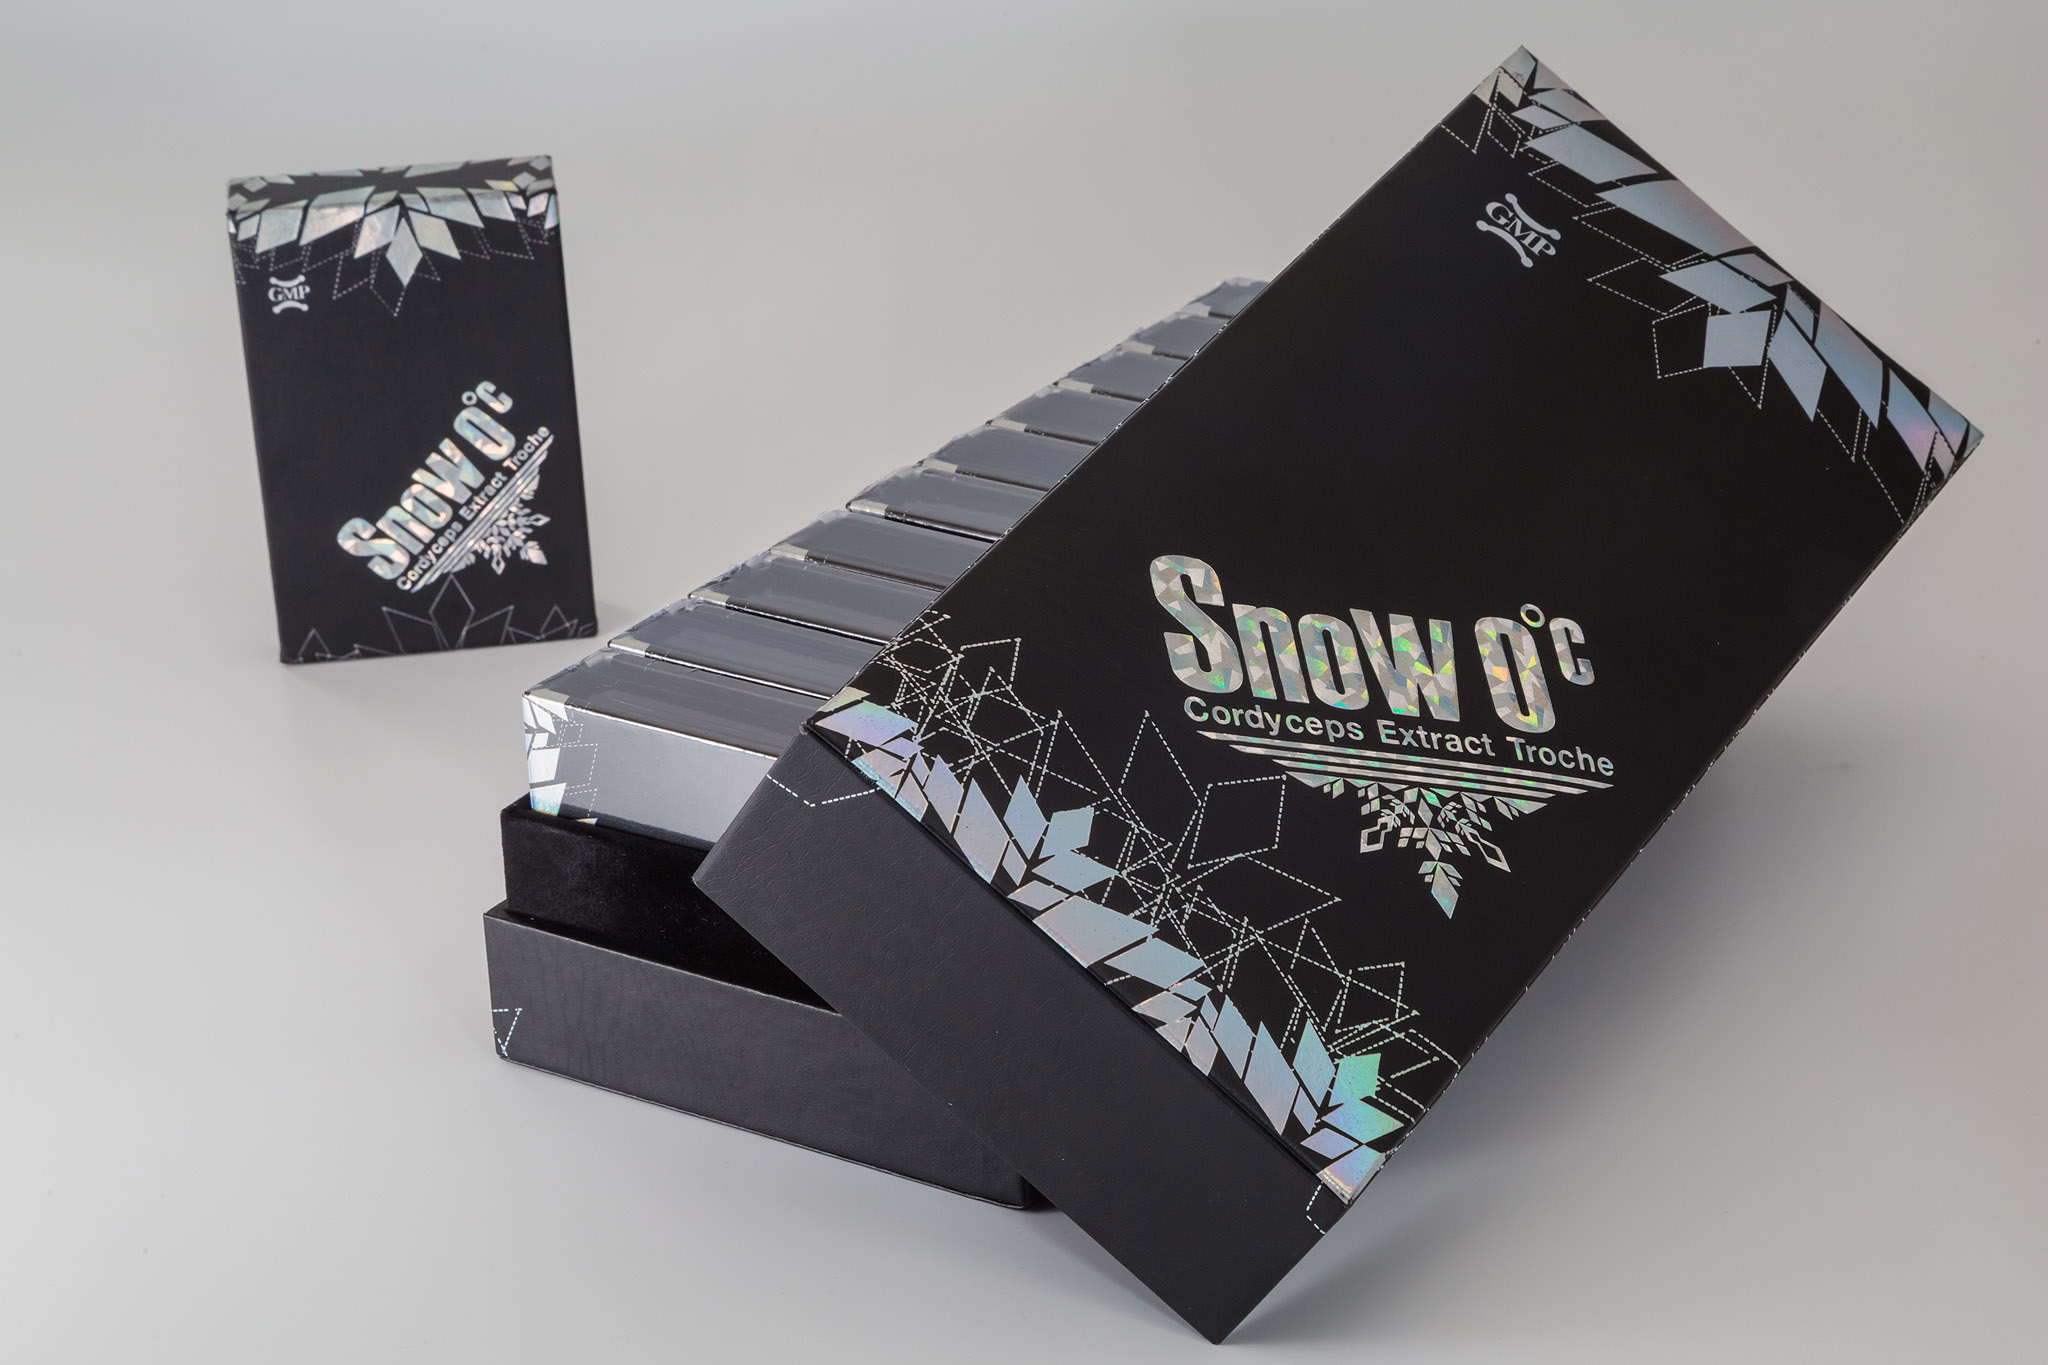 Oasis by H&B SnoW 0°C Cordyceps Extract Troche